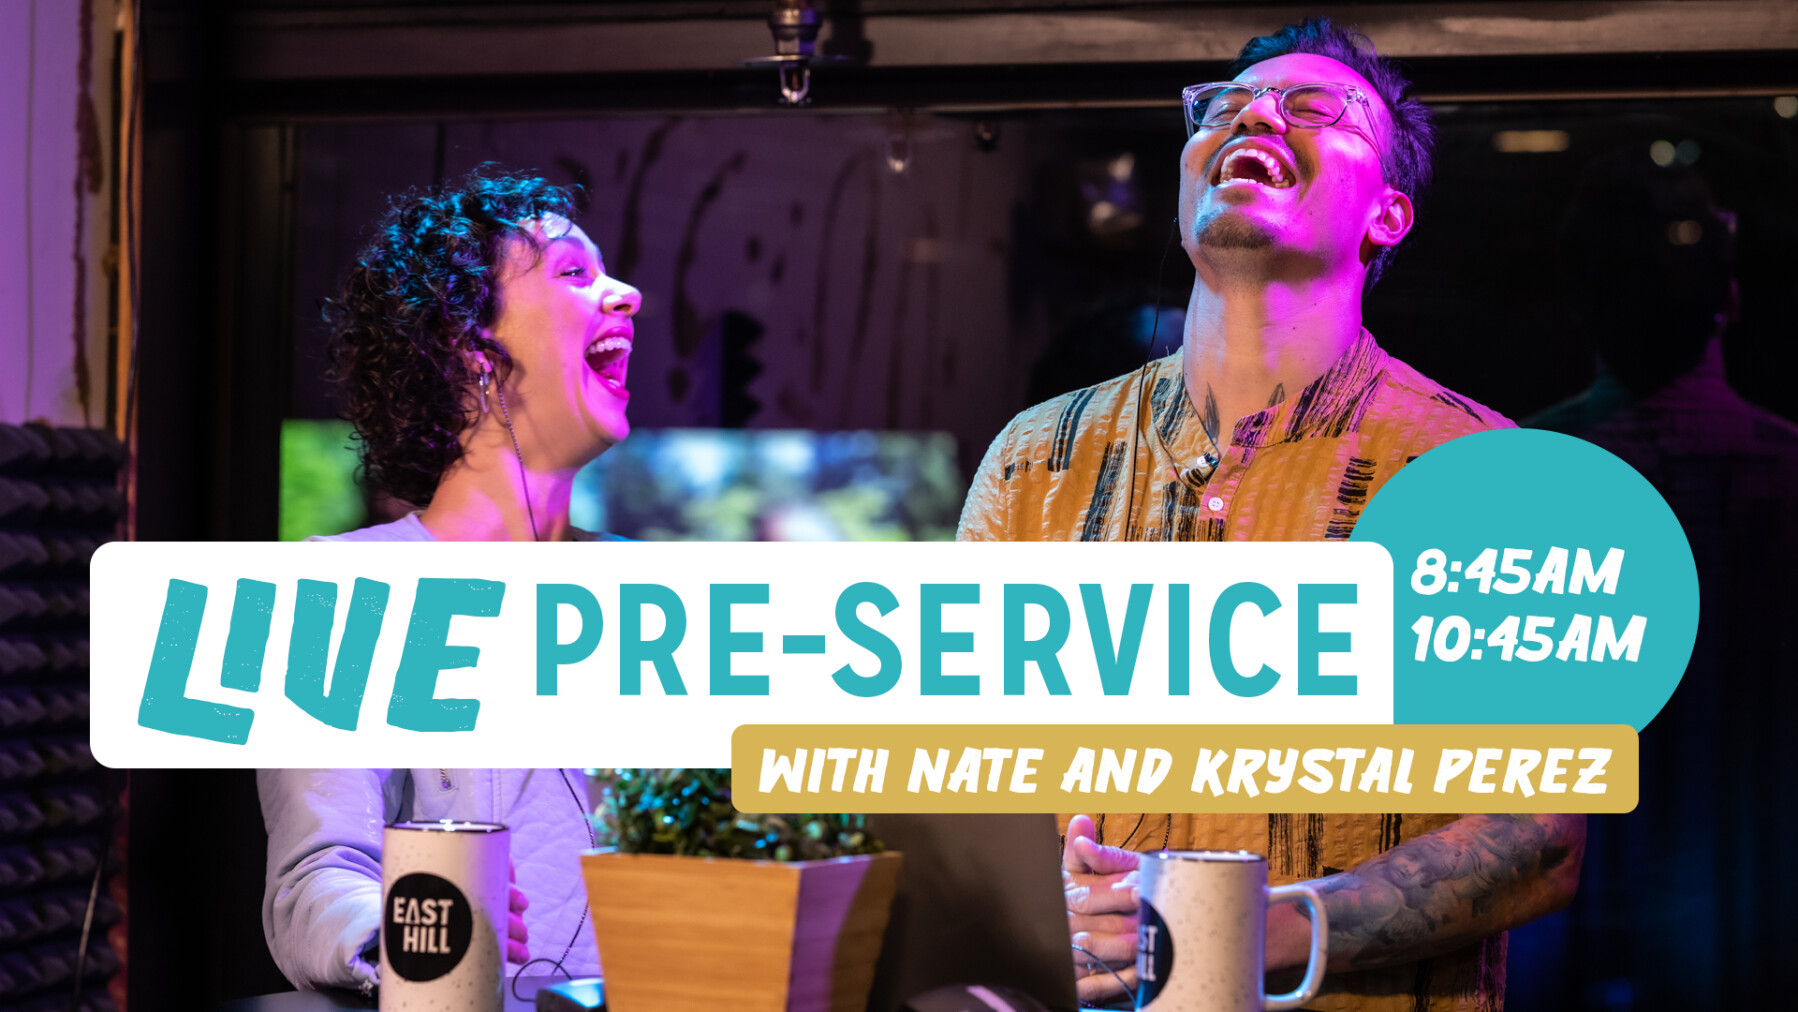 Live Pre-Service with Nate & Krystal